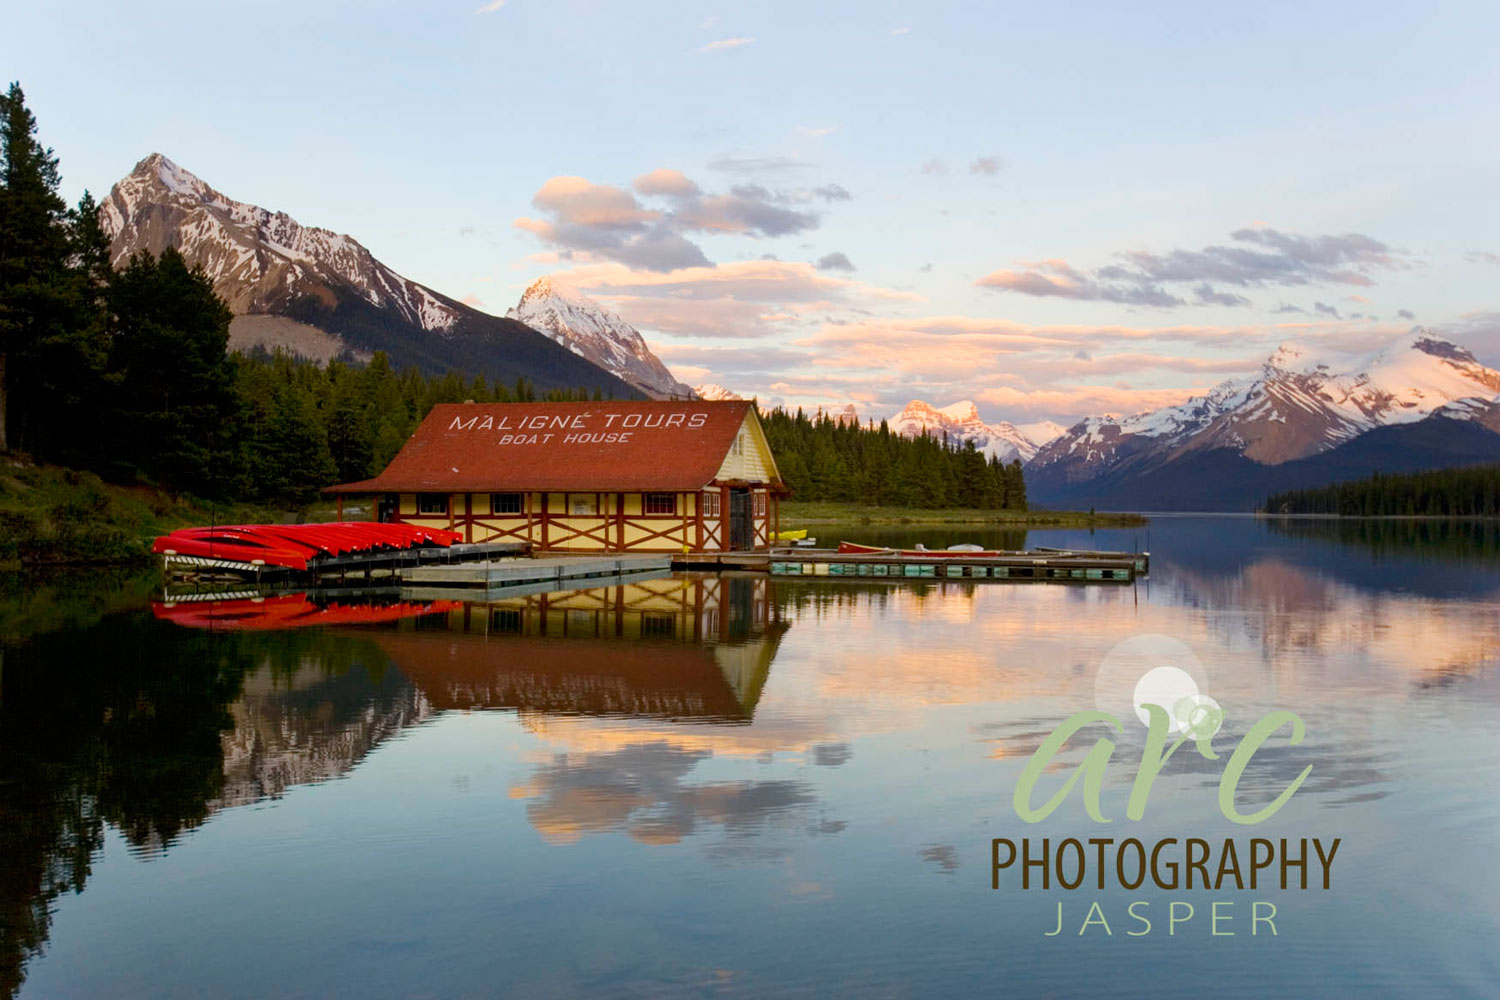 Maligne_Lake_boathouse.jpg